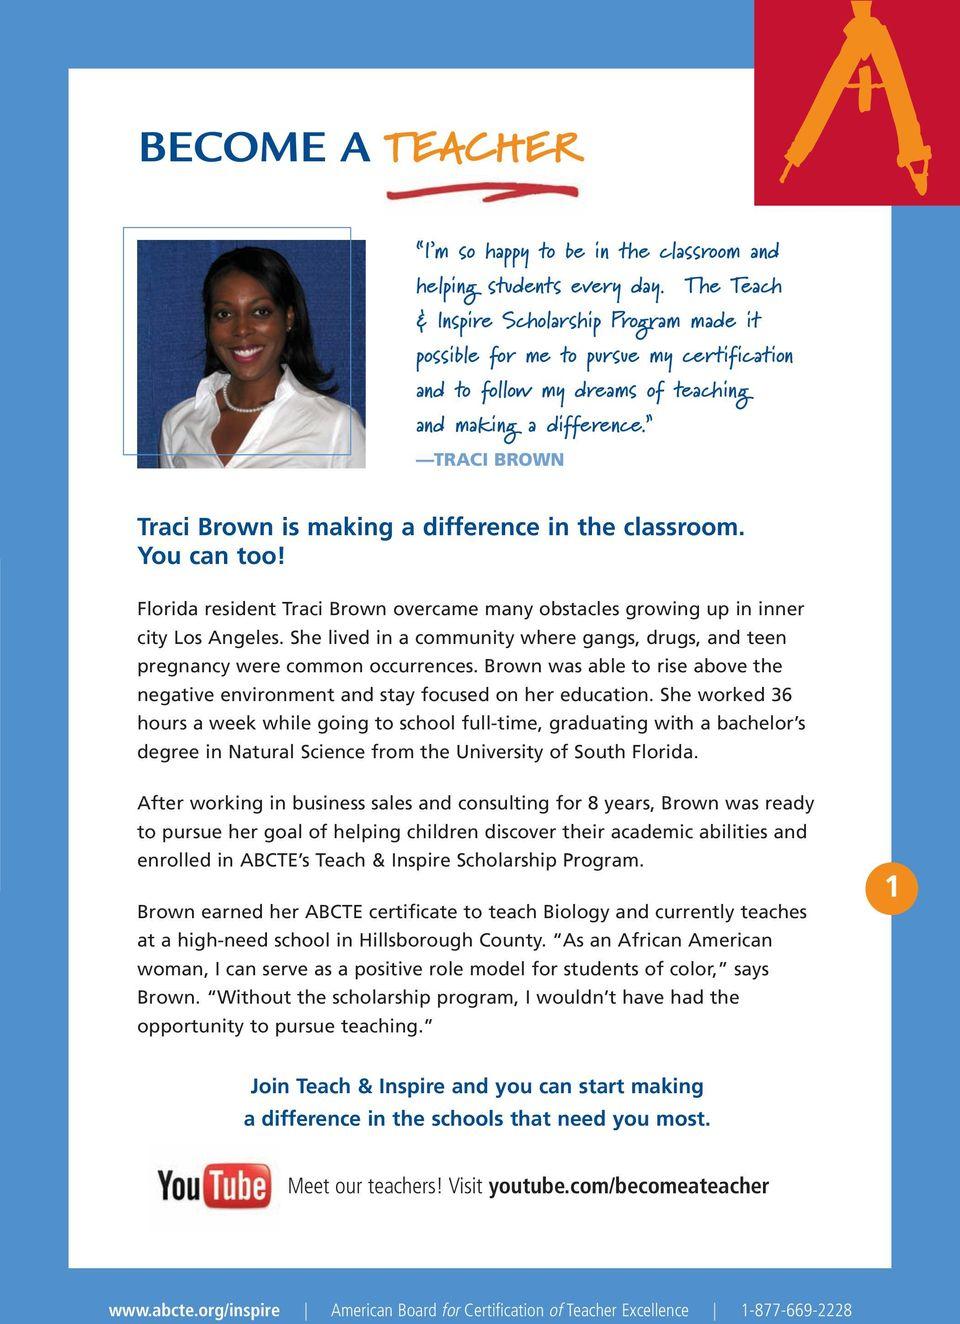 TRACI BROWN Traci Brown is making a difference in the classroom. You can too! Florida resident Traci Brown overcame many obstacles growing up in inner city Los Angeles.